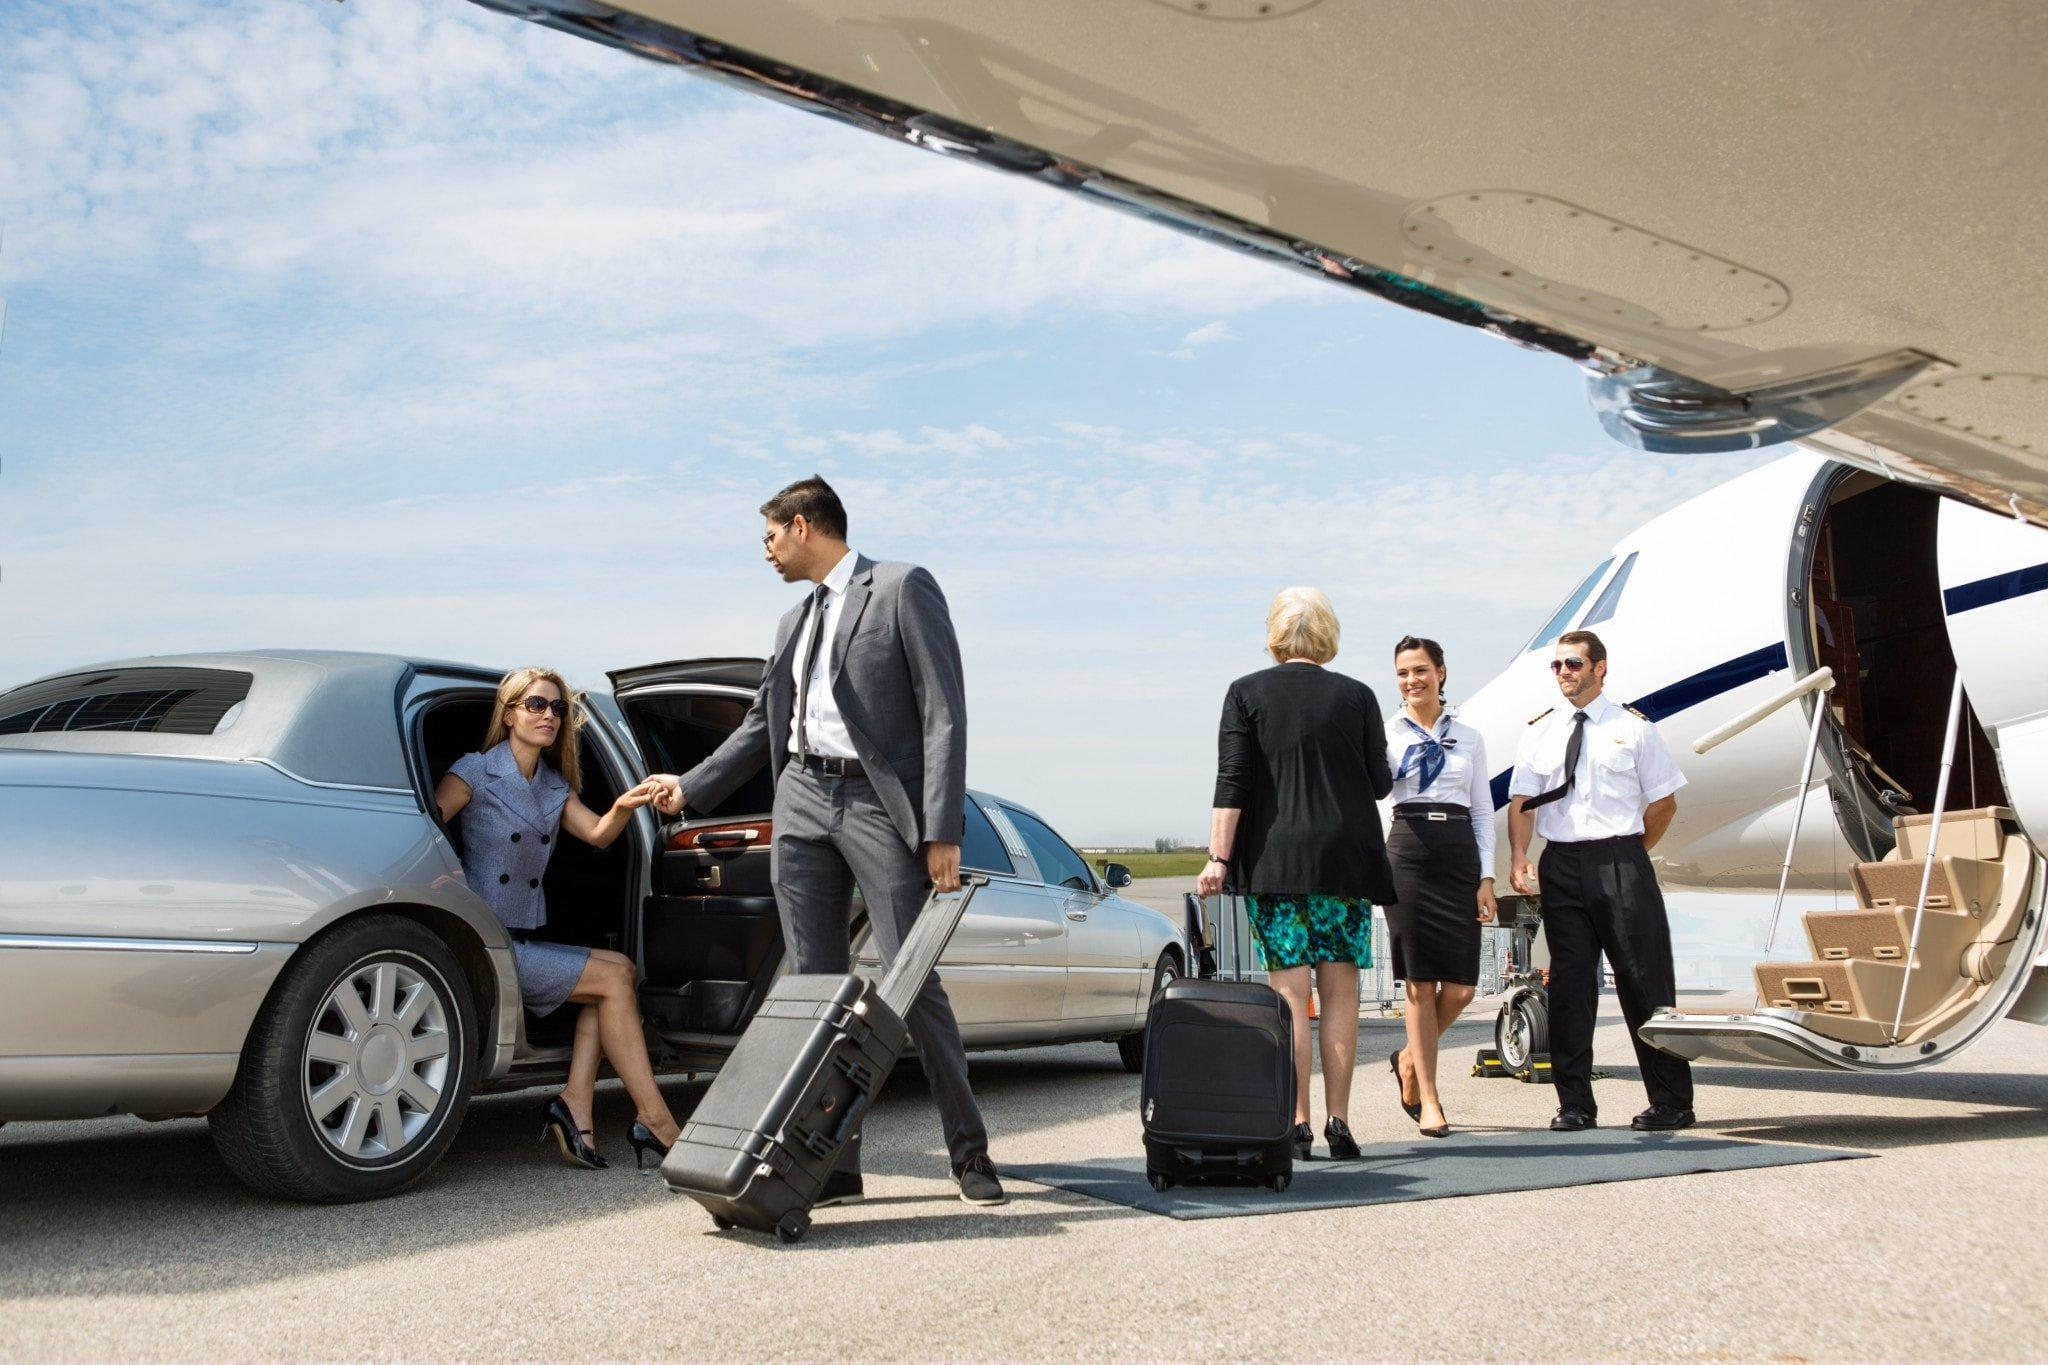 Airport Limo Service-Travel in Style in NJ